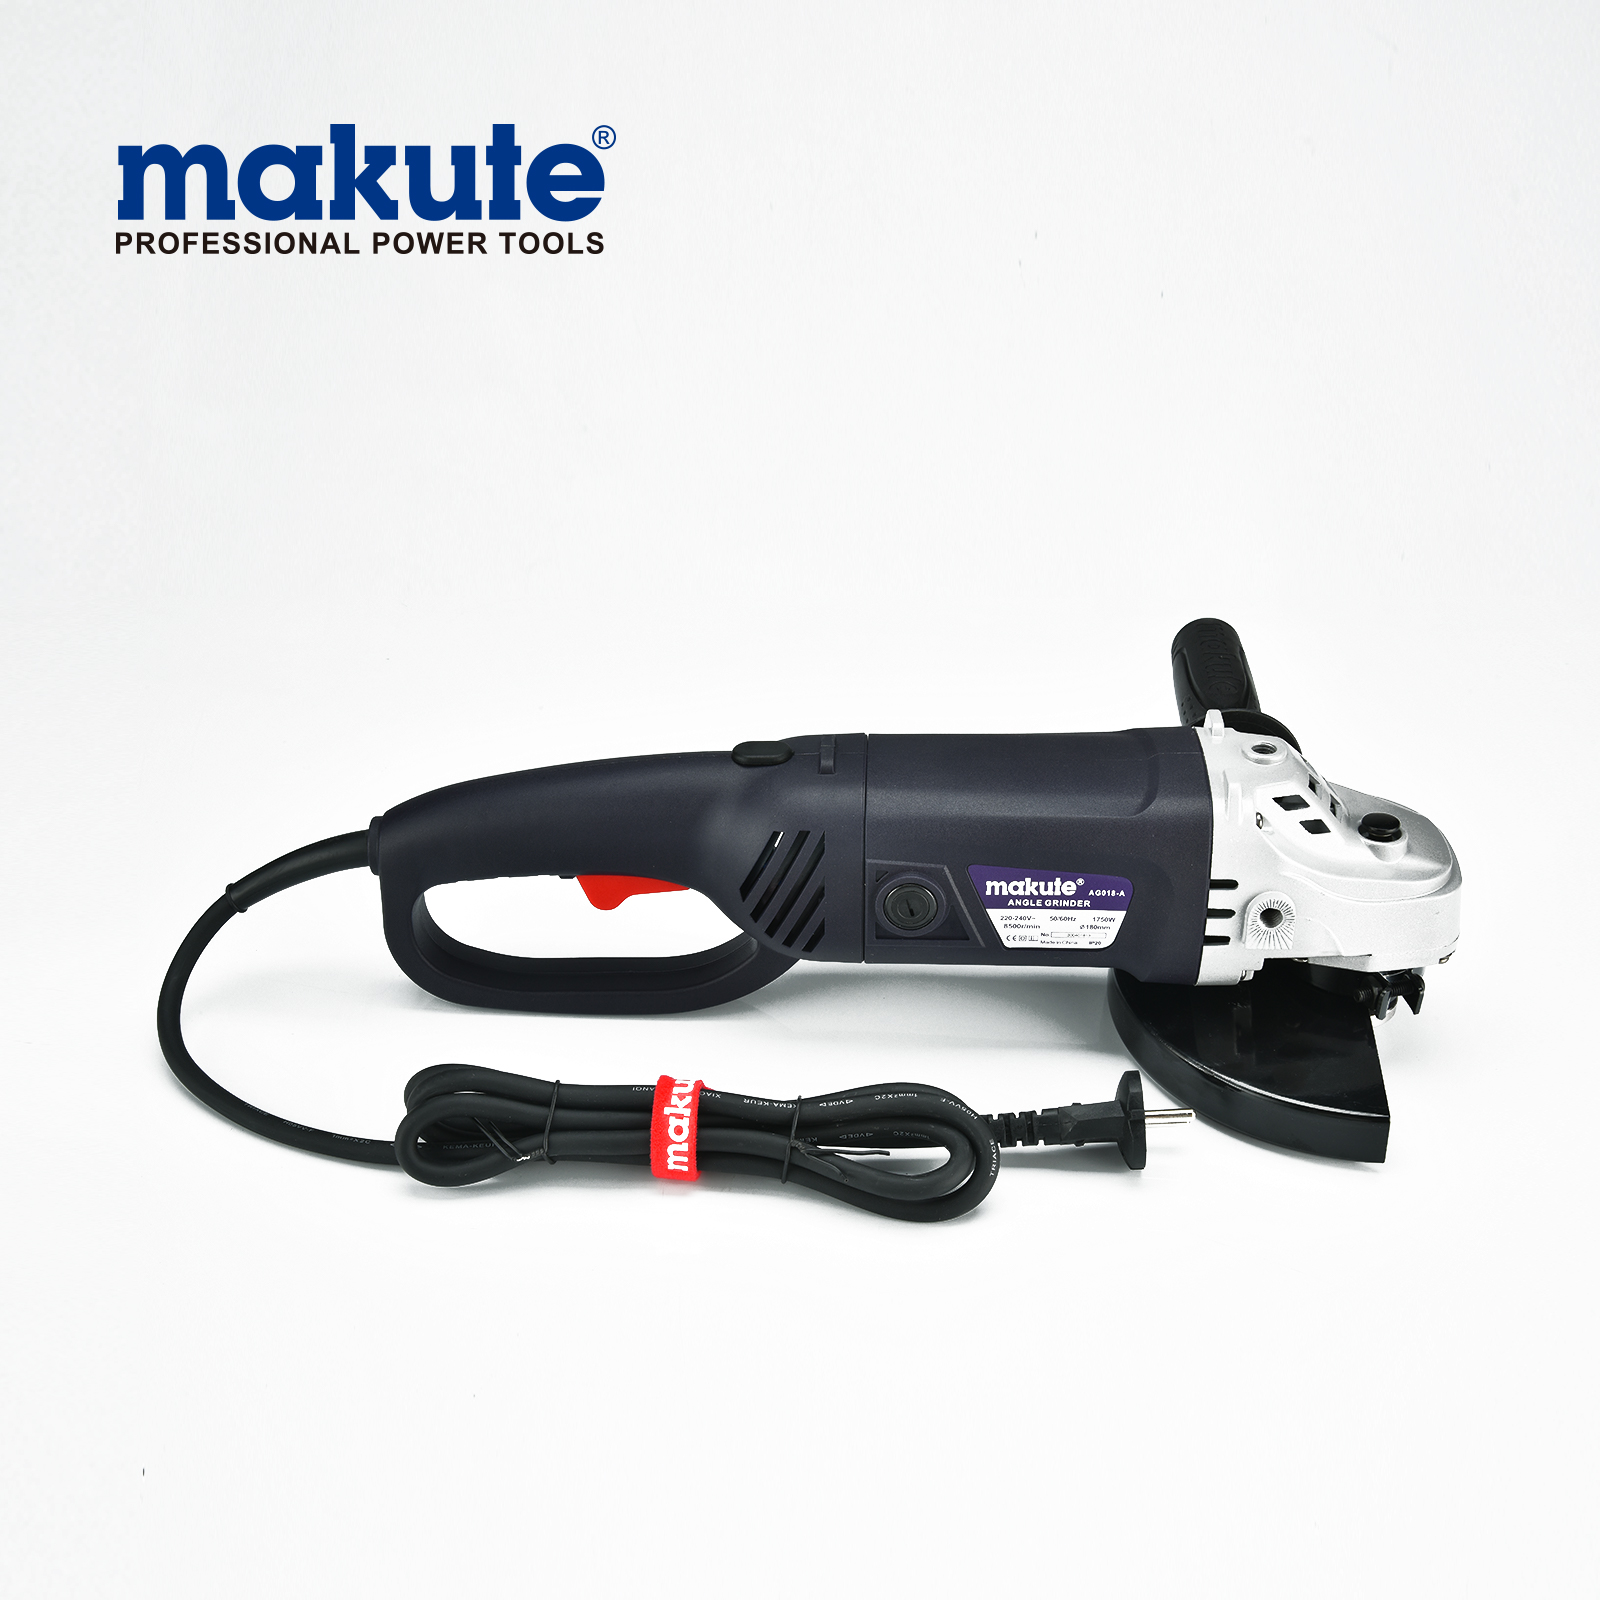 china makute power tool 9 inch 180m AG018-A high quality electric angle grinder